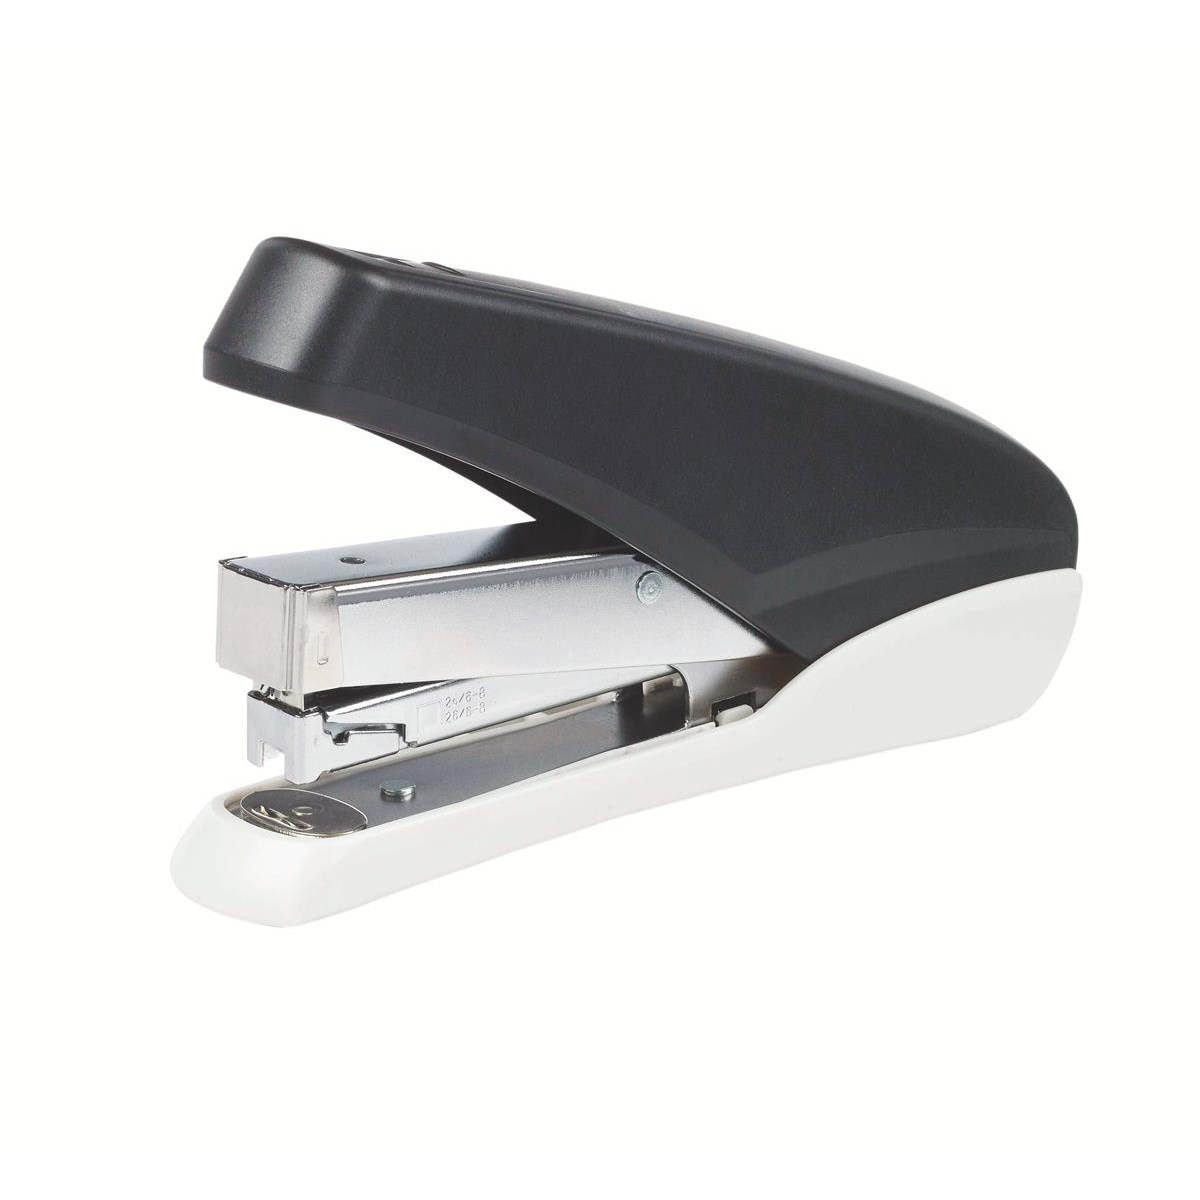 Desktop Staplers 5 Star Office Power-Save Full Strip Stapler 40 Sheet Capacity Takes 26/6 Staples Black/Grey